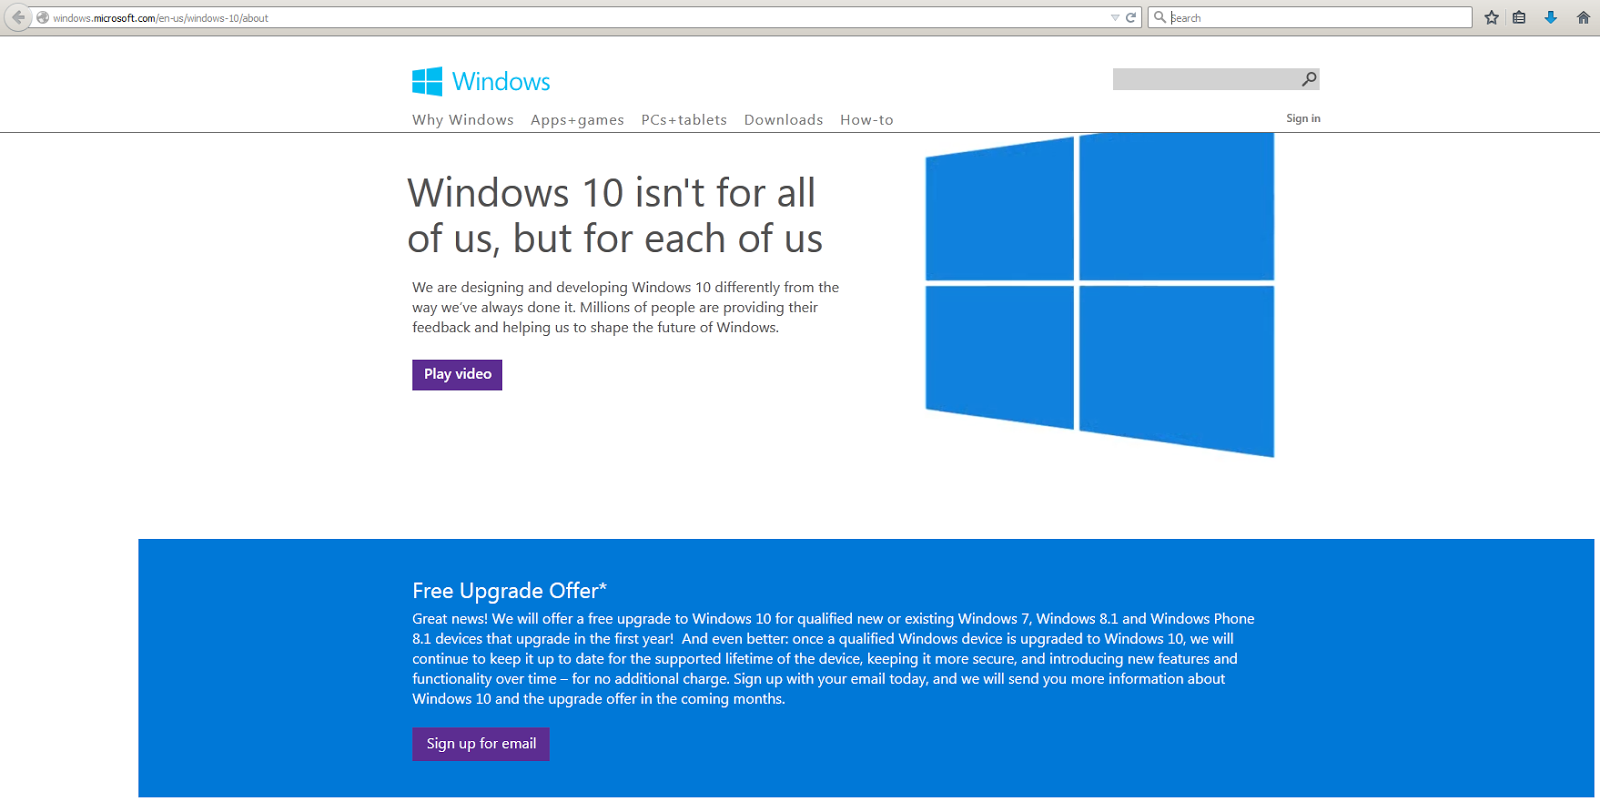 http://windows.microsoft.com/en-us/windows-10/about